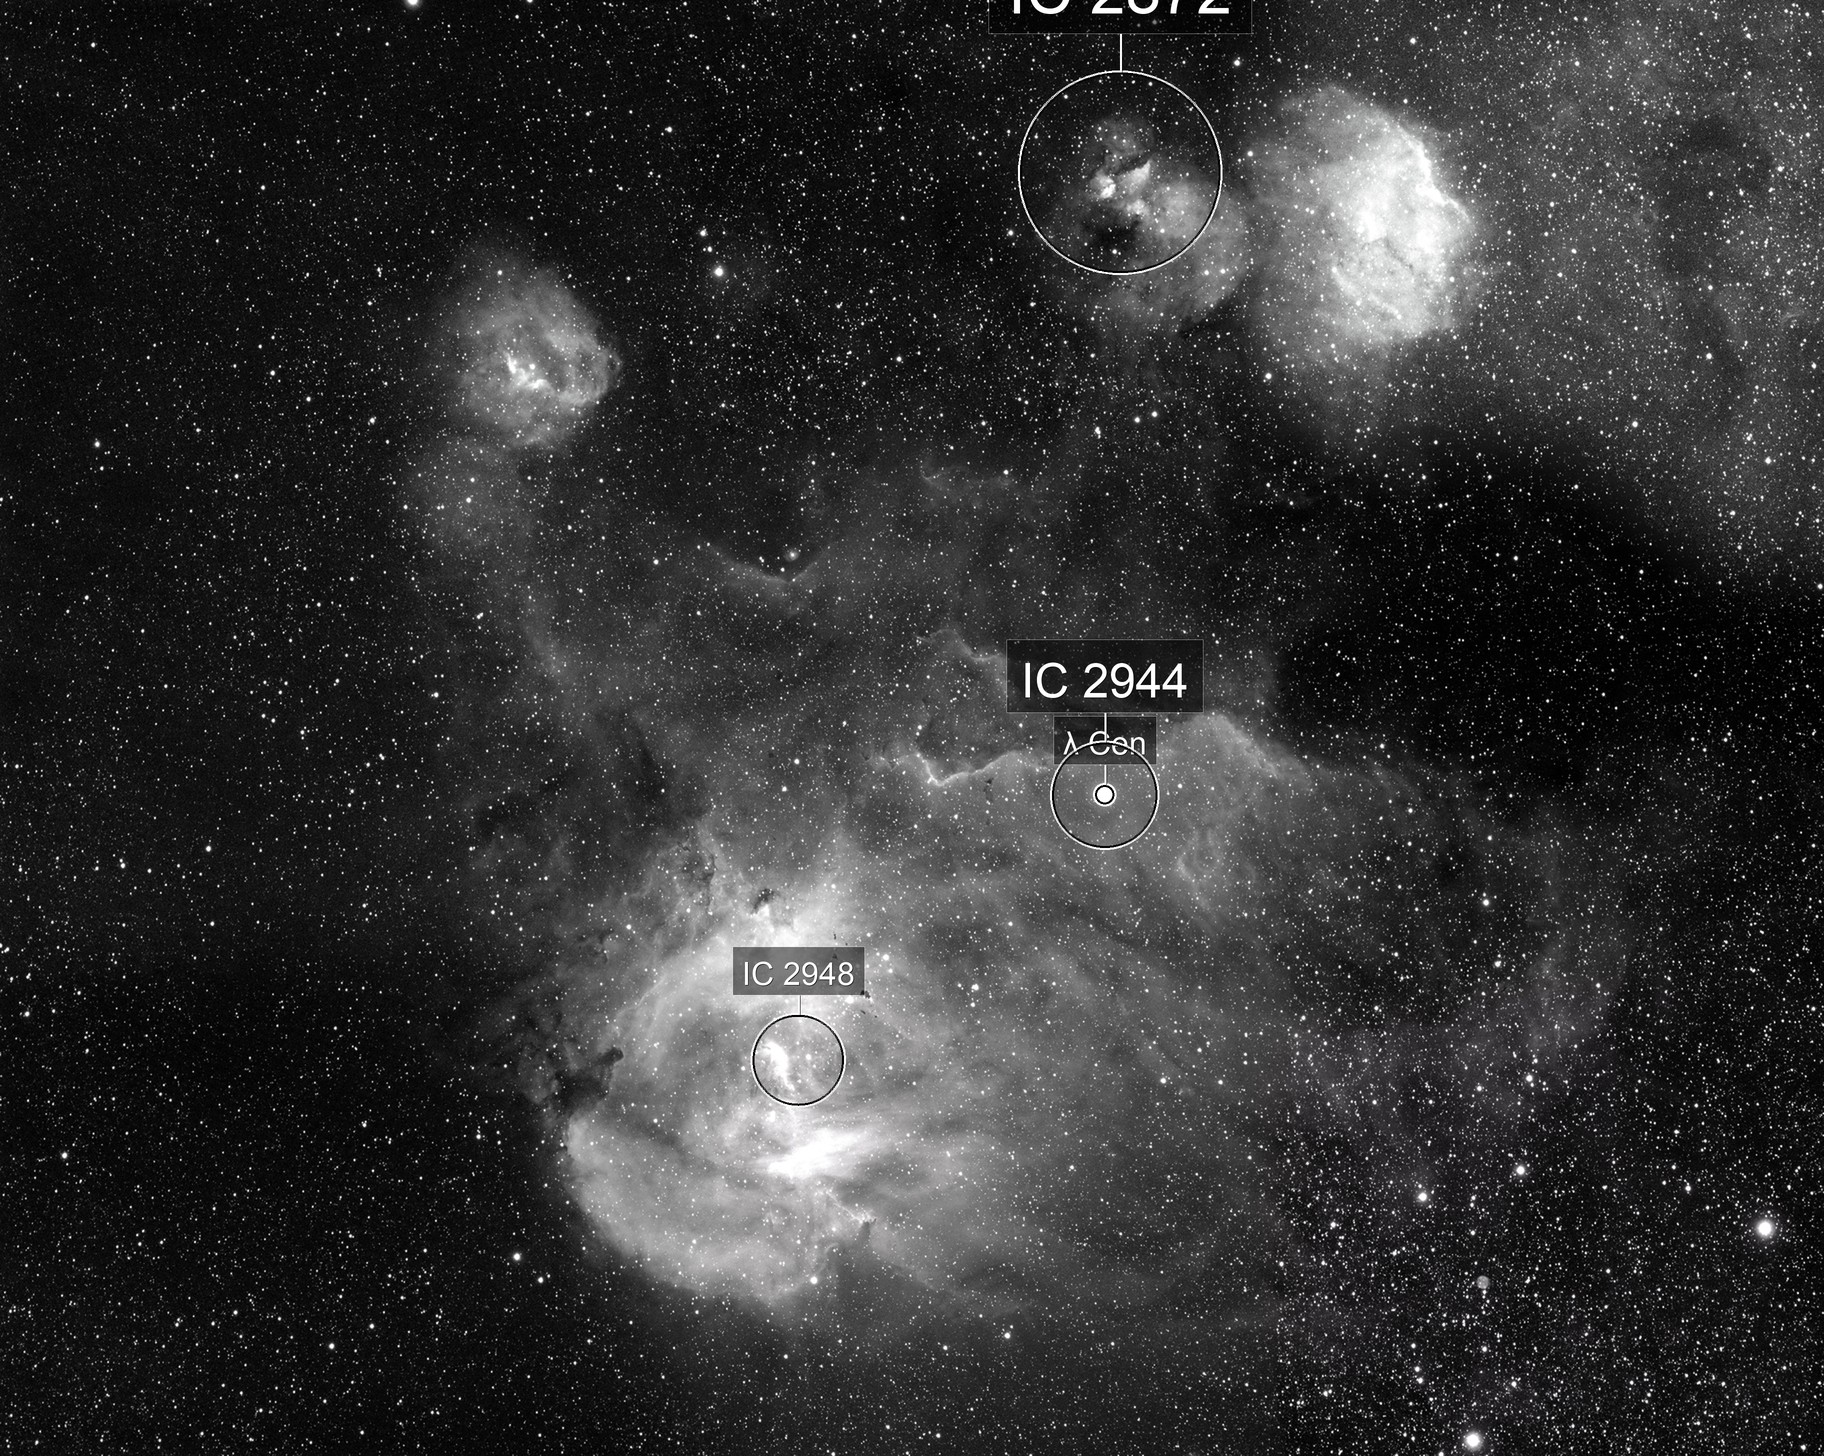 IC 2944 - The Running Chicken - 9 Image Mosaic in OIII